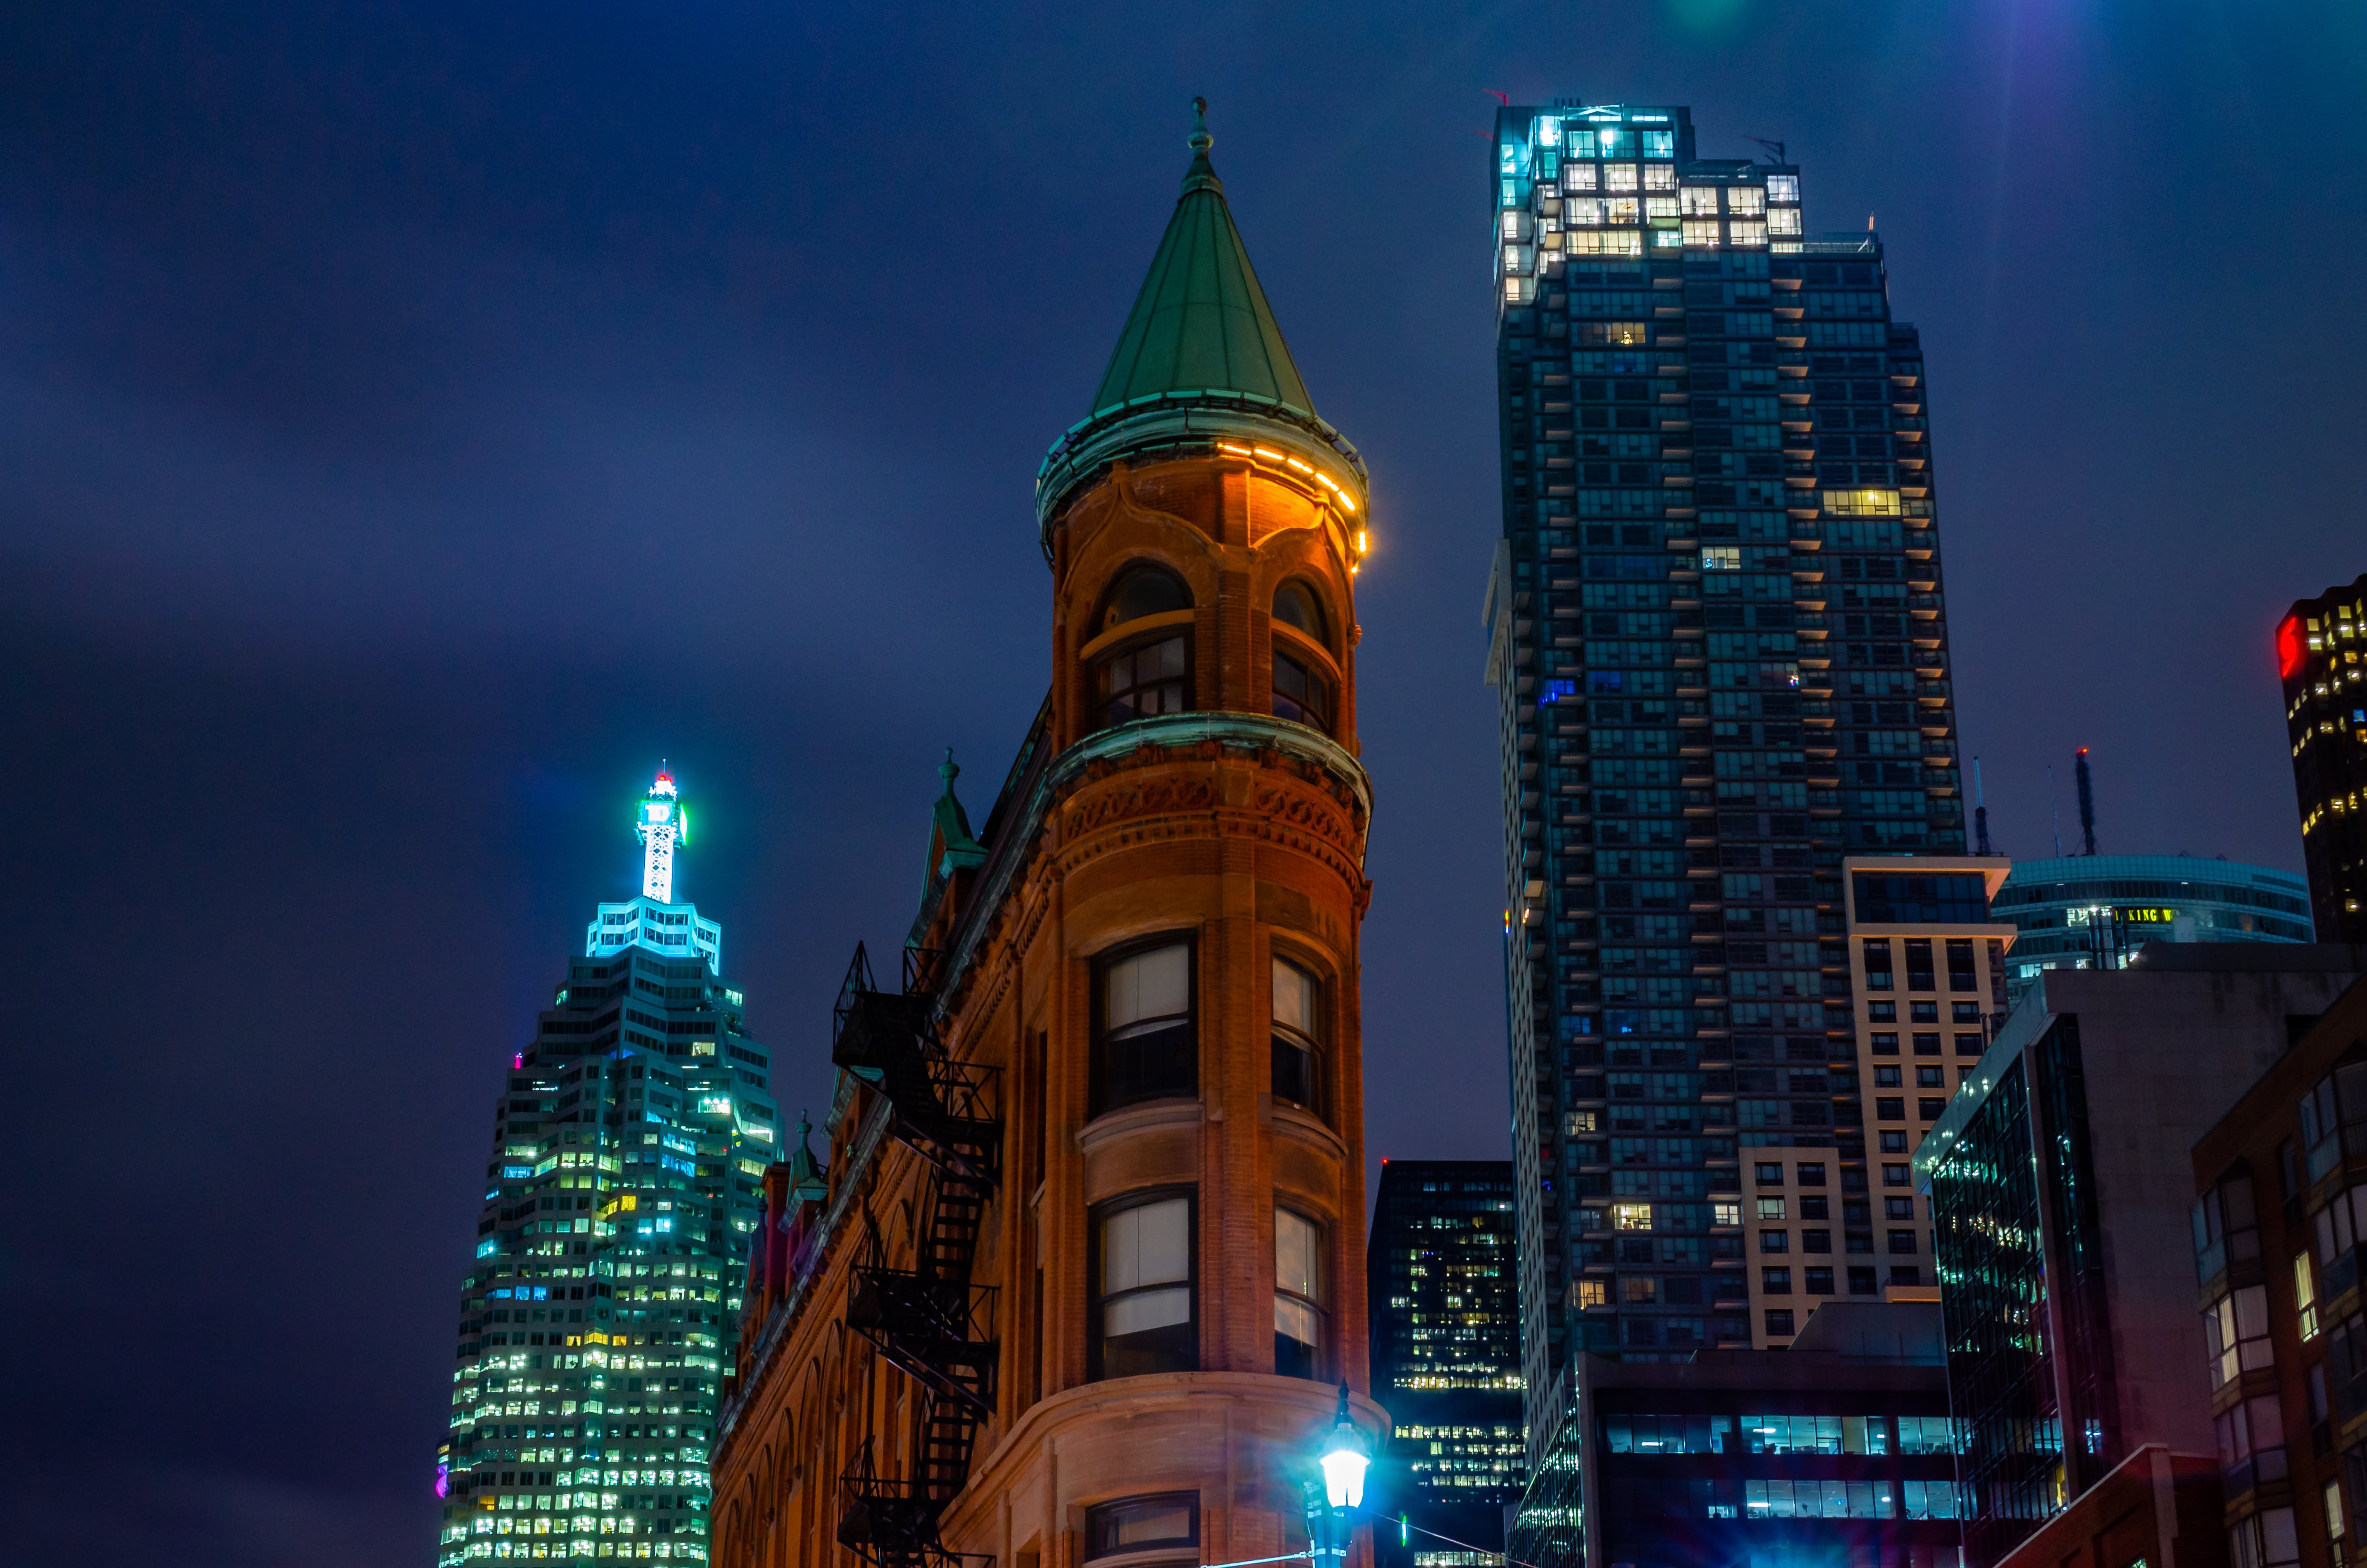 Free stock photo of 4k wallpaper, architecture, buildings, city lights